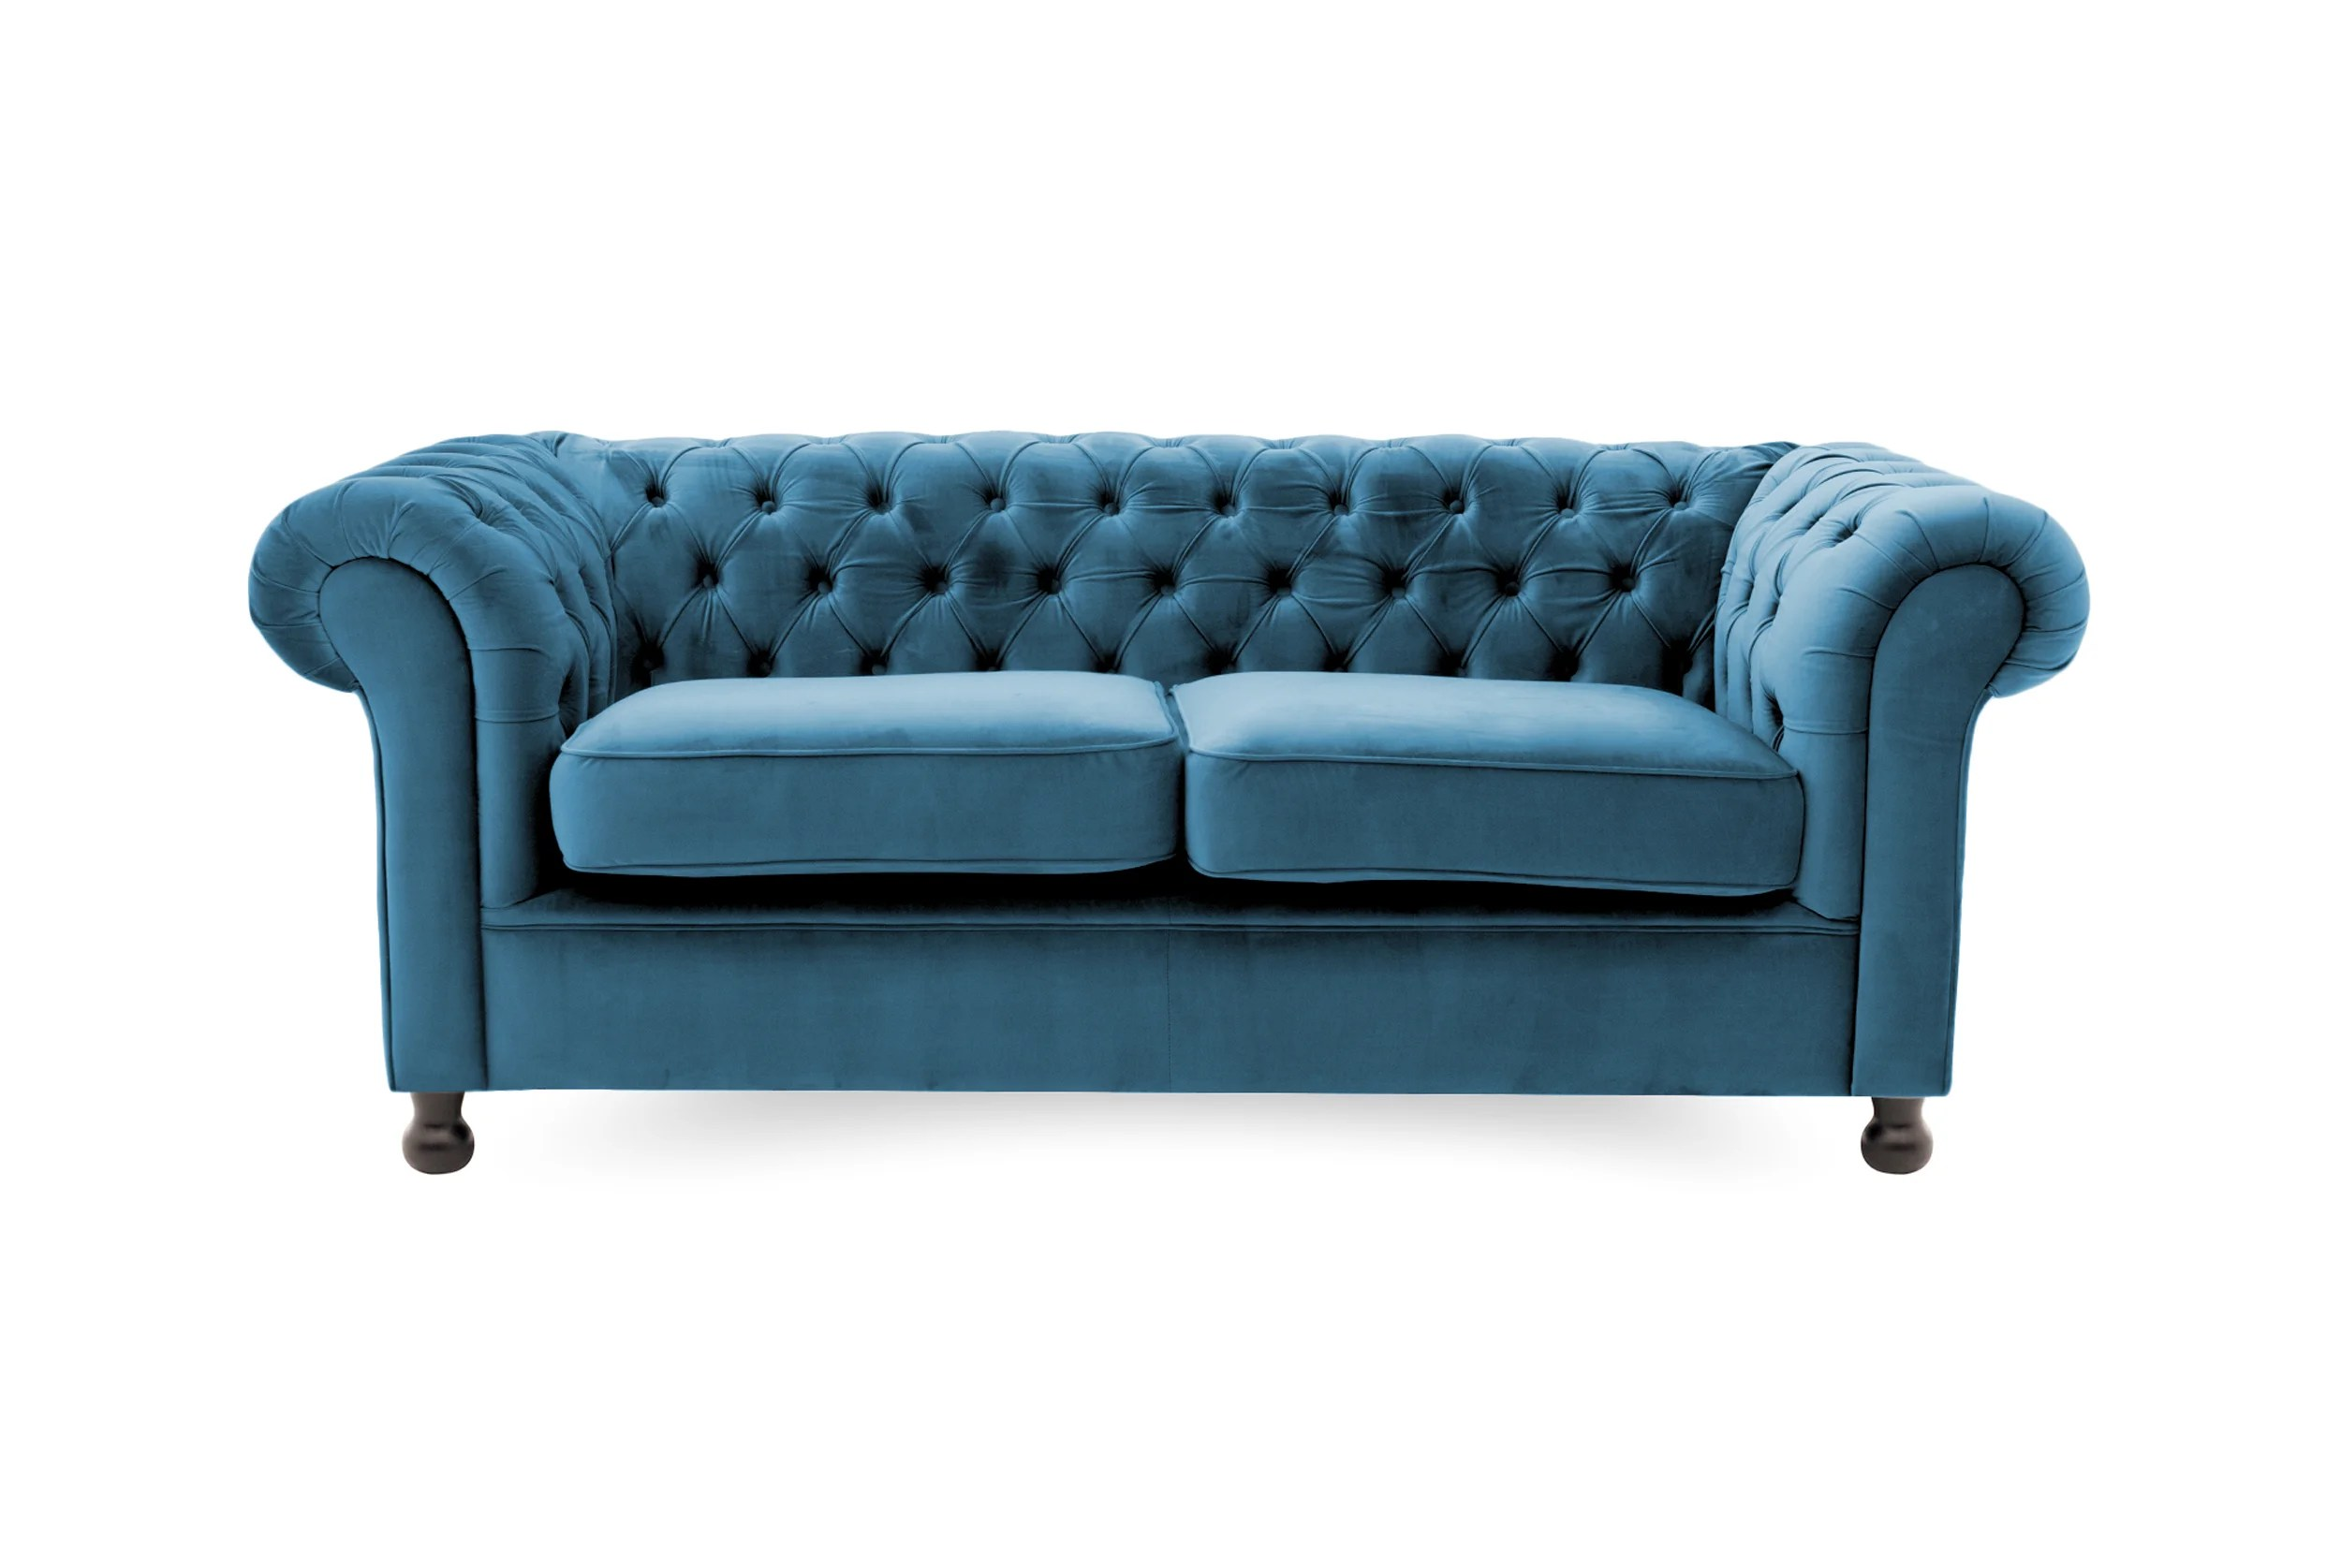 Chesterfield Sofa Online Uk Higby 3 Seater Chesterfield Sofa